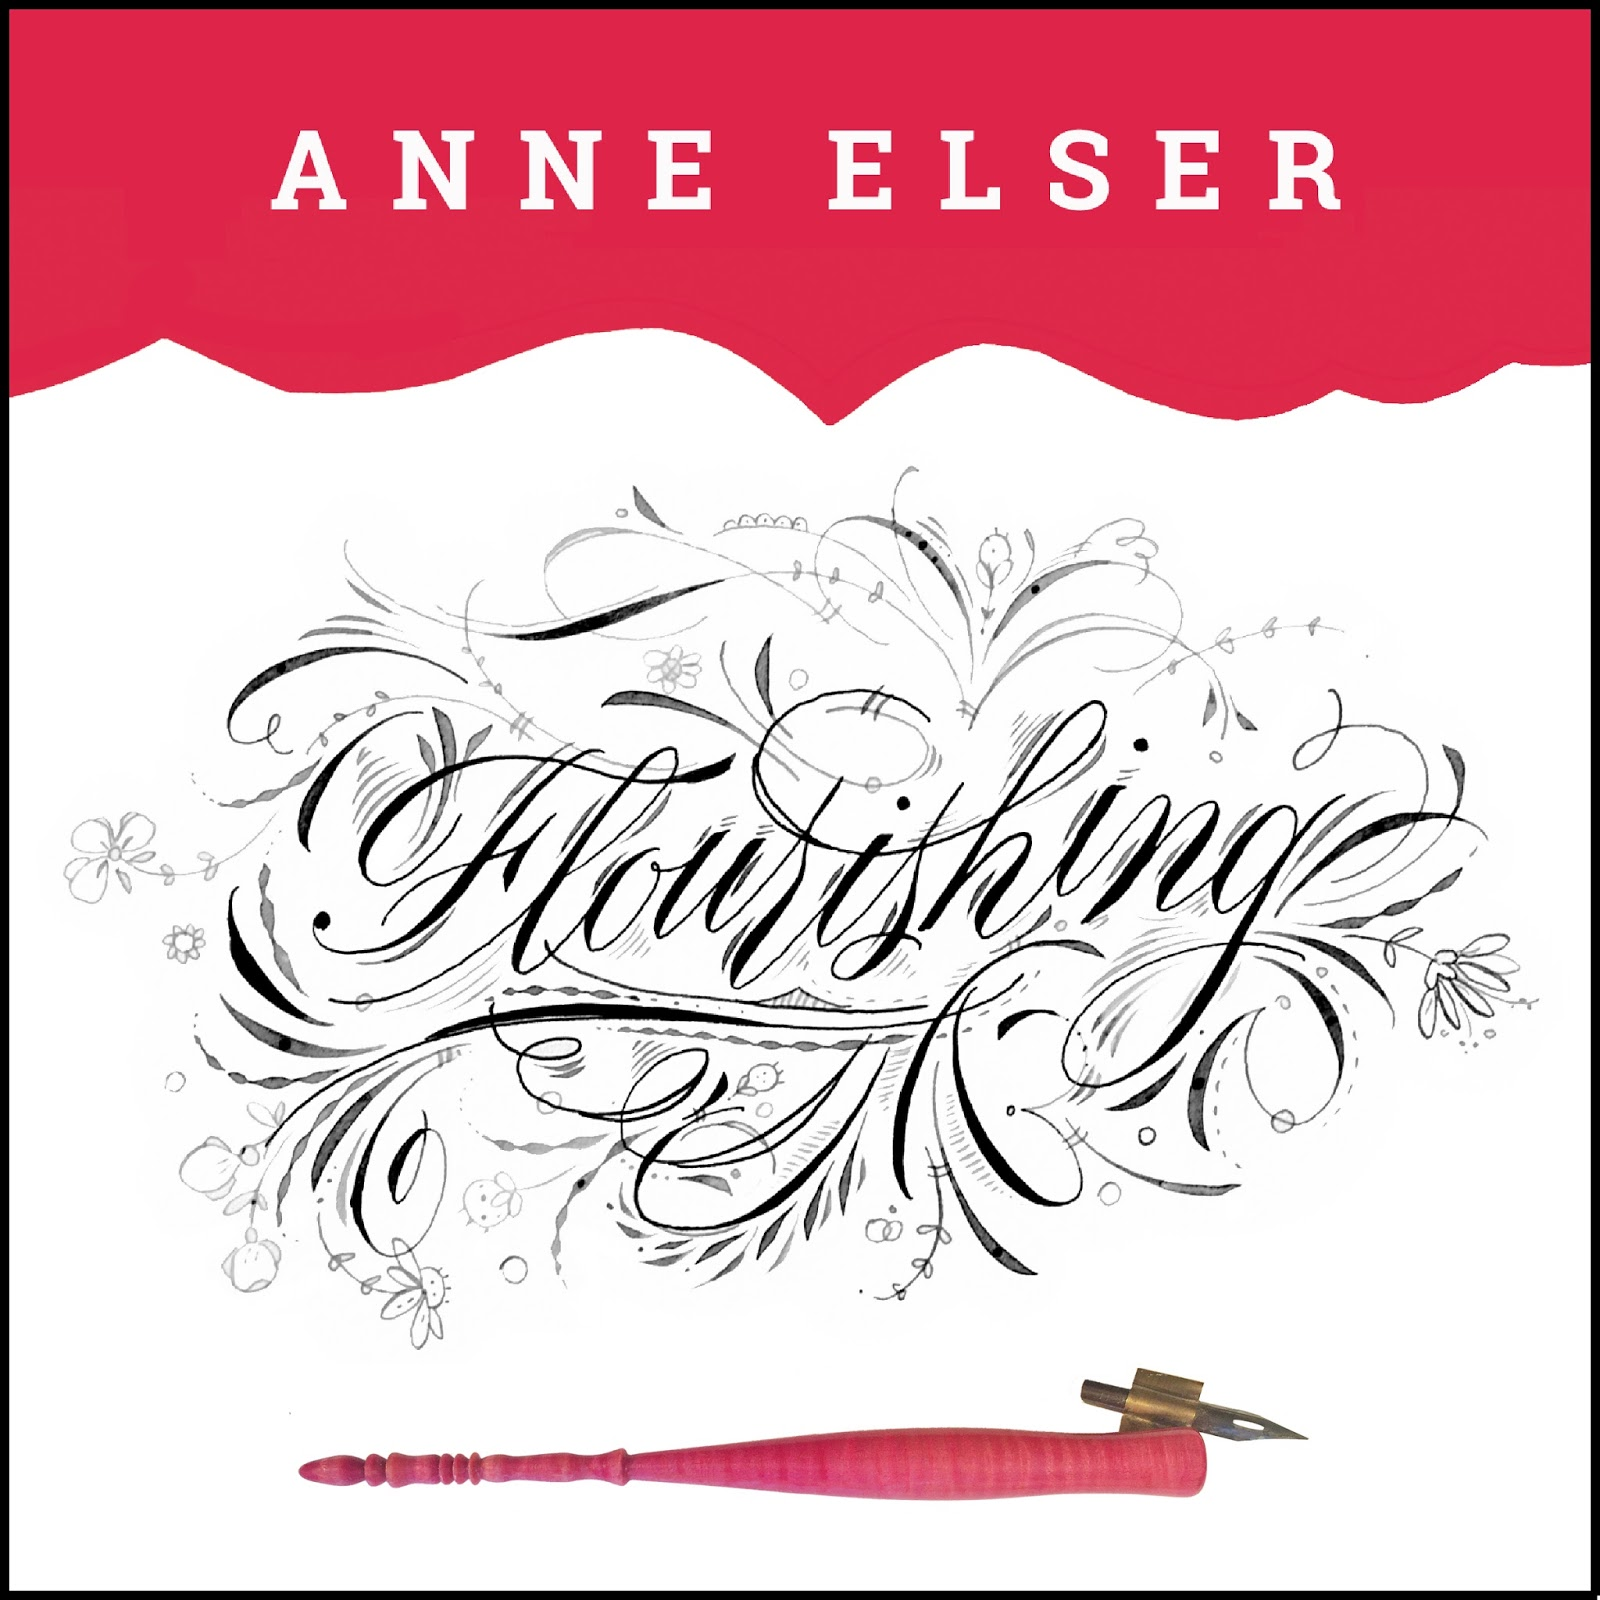 Anne Elser: Announcing A New Class/Workshop: Calligraphic